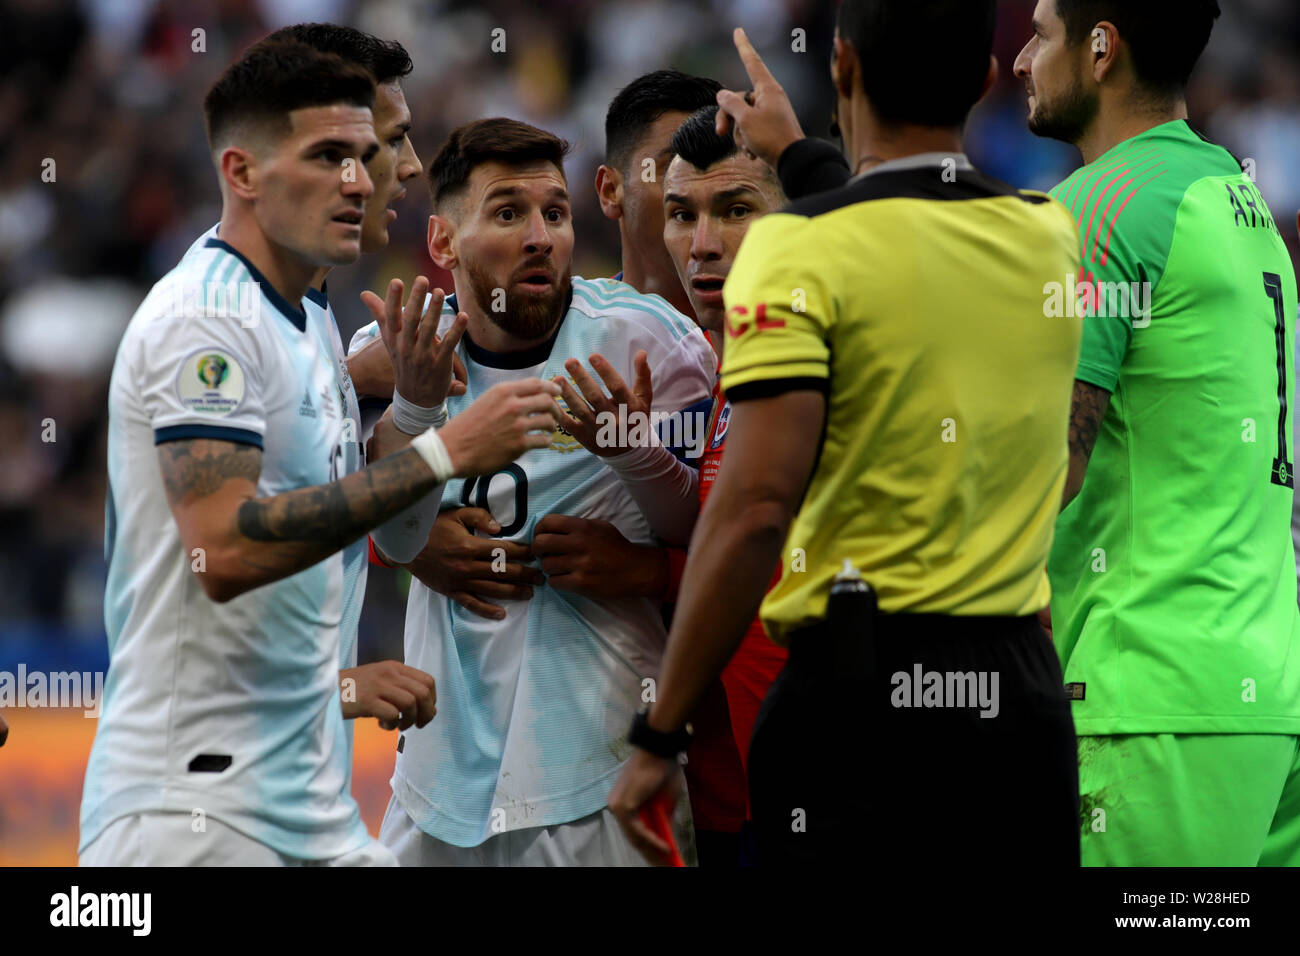 Sao Paulo, Brazil. 6th July, 2019. Argentina's Lionel Messi (3rd L) reacts after he recieved a red card during the 3rd place match of Copa America 2019 between Argentina and Chile in Sao Paulo, Brazil, July 6, 2019. Credit: Rahel Patrasso/Xinhua/Alamy Live News - Stock Image